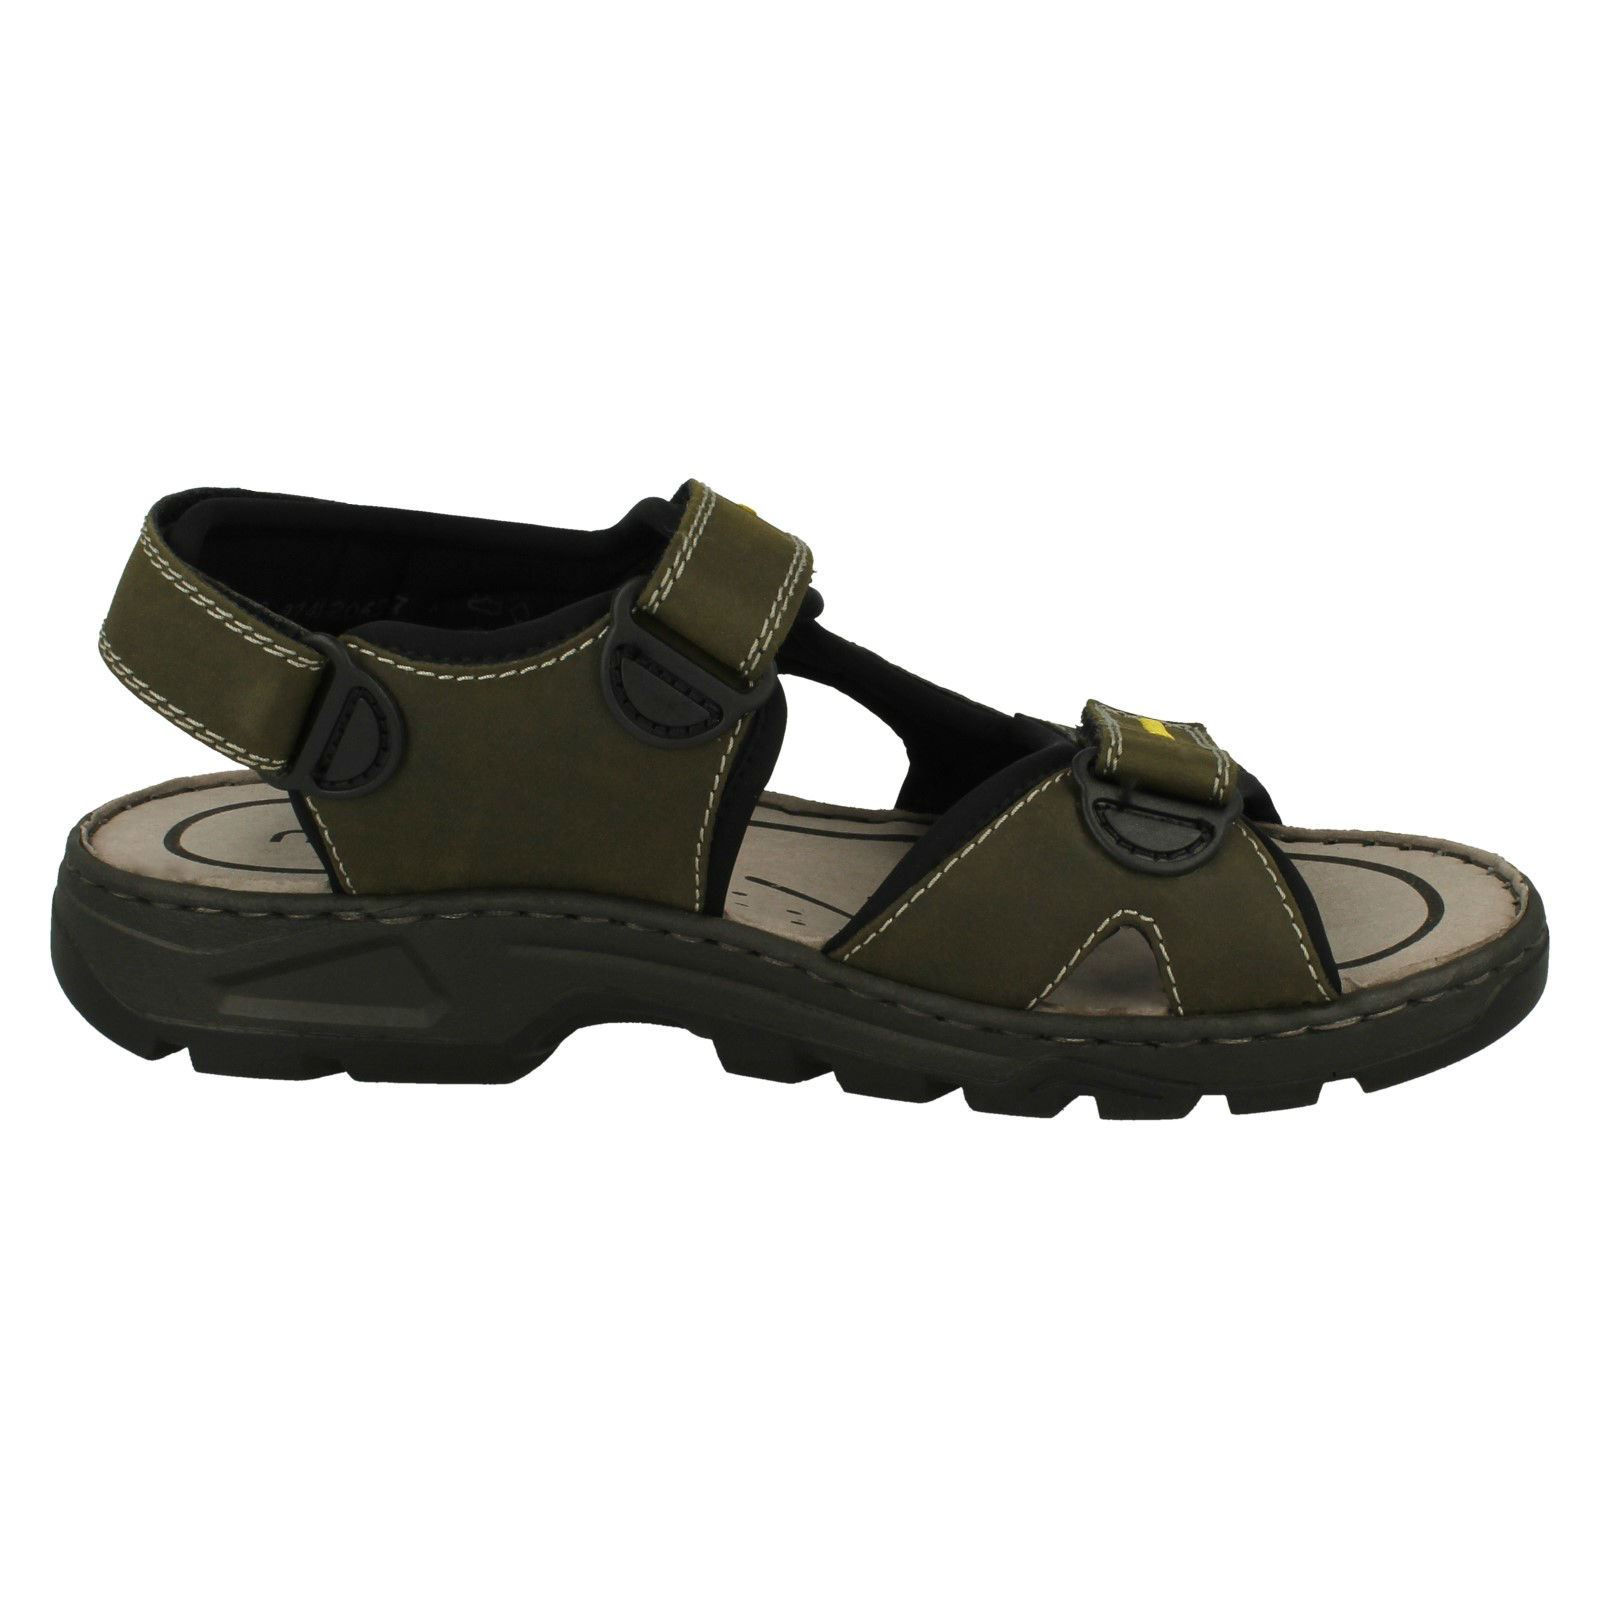 Mens-Rieker-Casual-Strapped-Sandals-26157 thumbnail 5